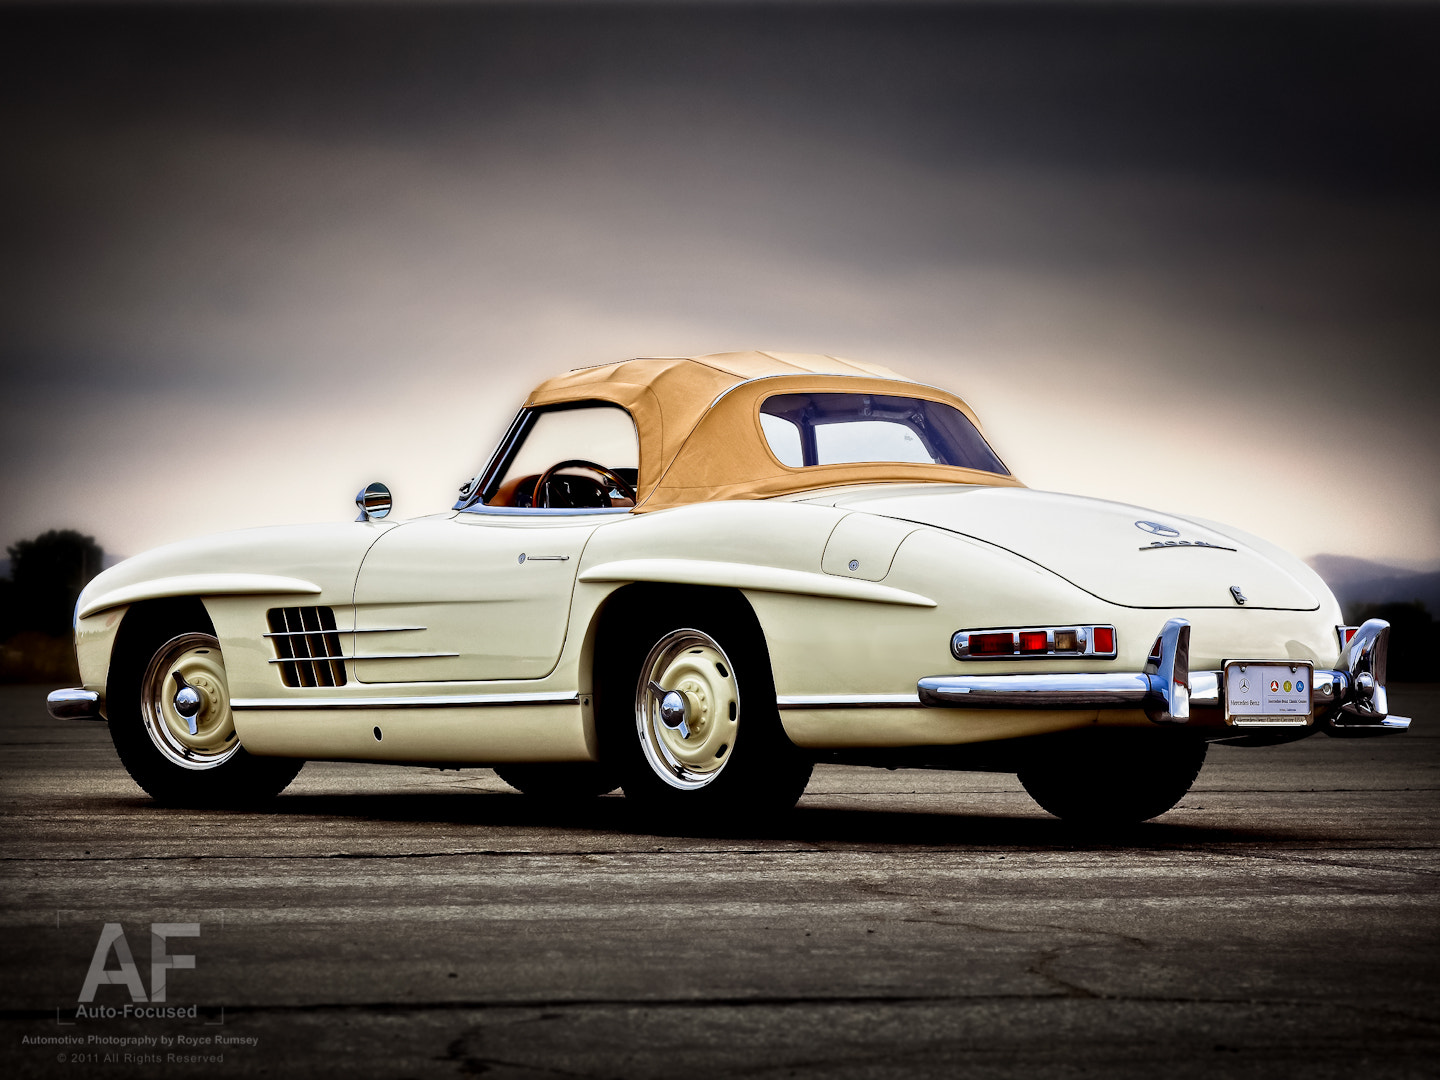 Photograph 300SL Roadster by Royce Rumsey on 500px